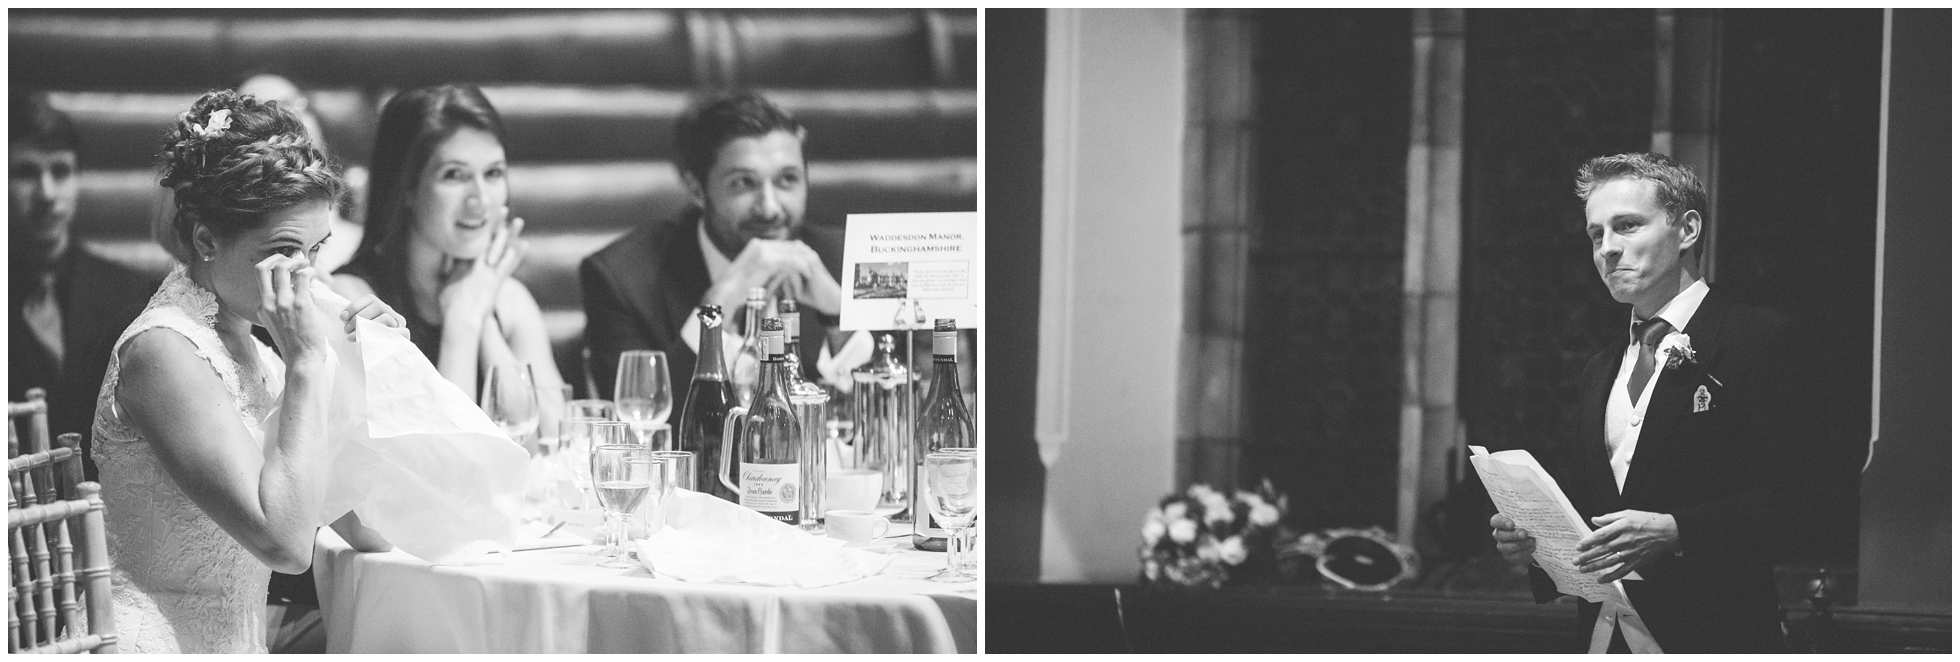 The grooms speeche at Oxford Union makes the bride cry